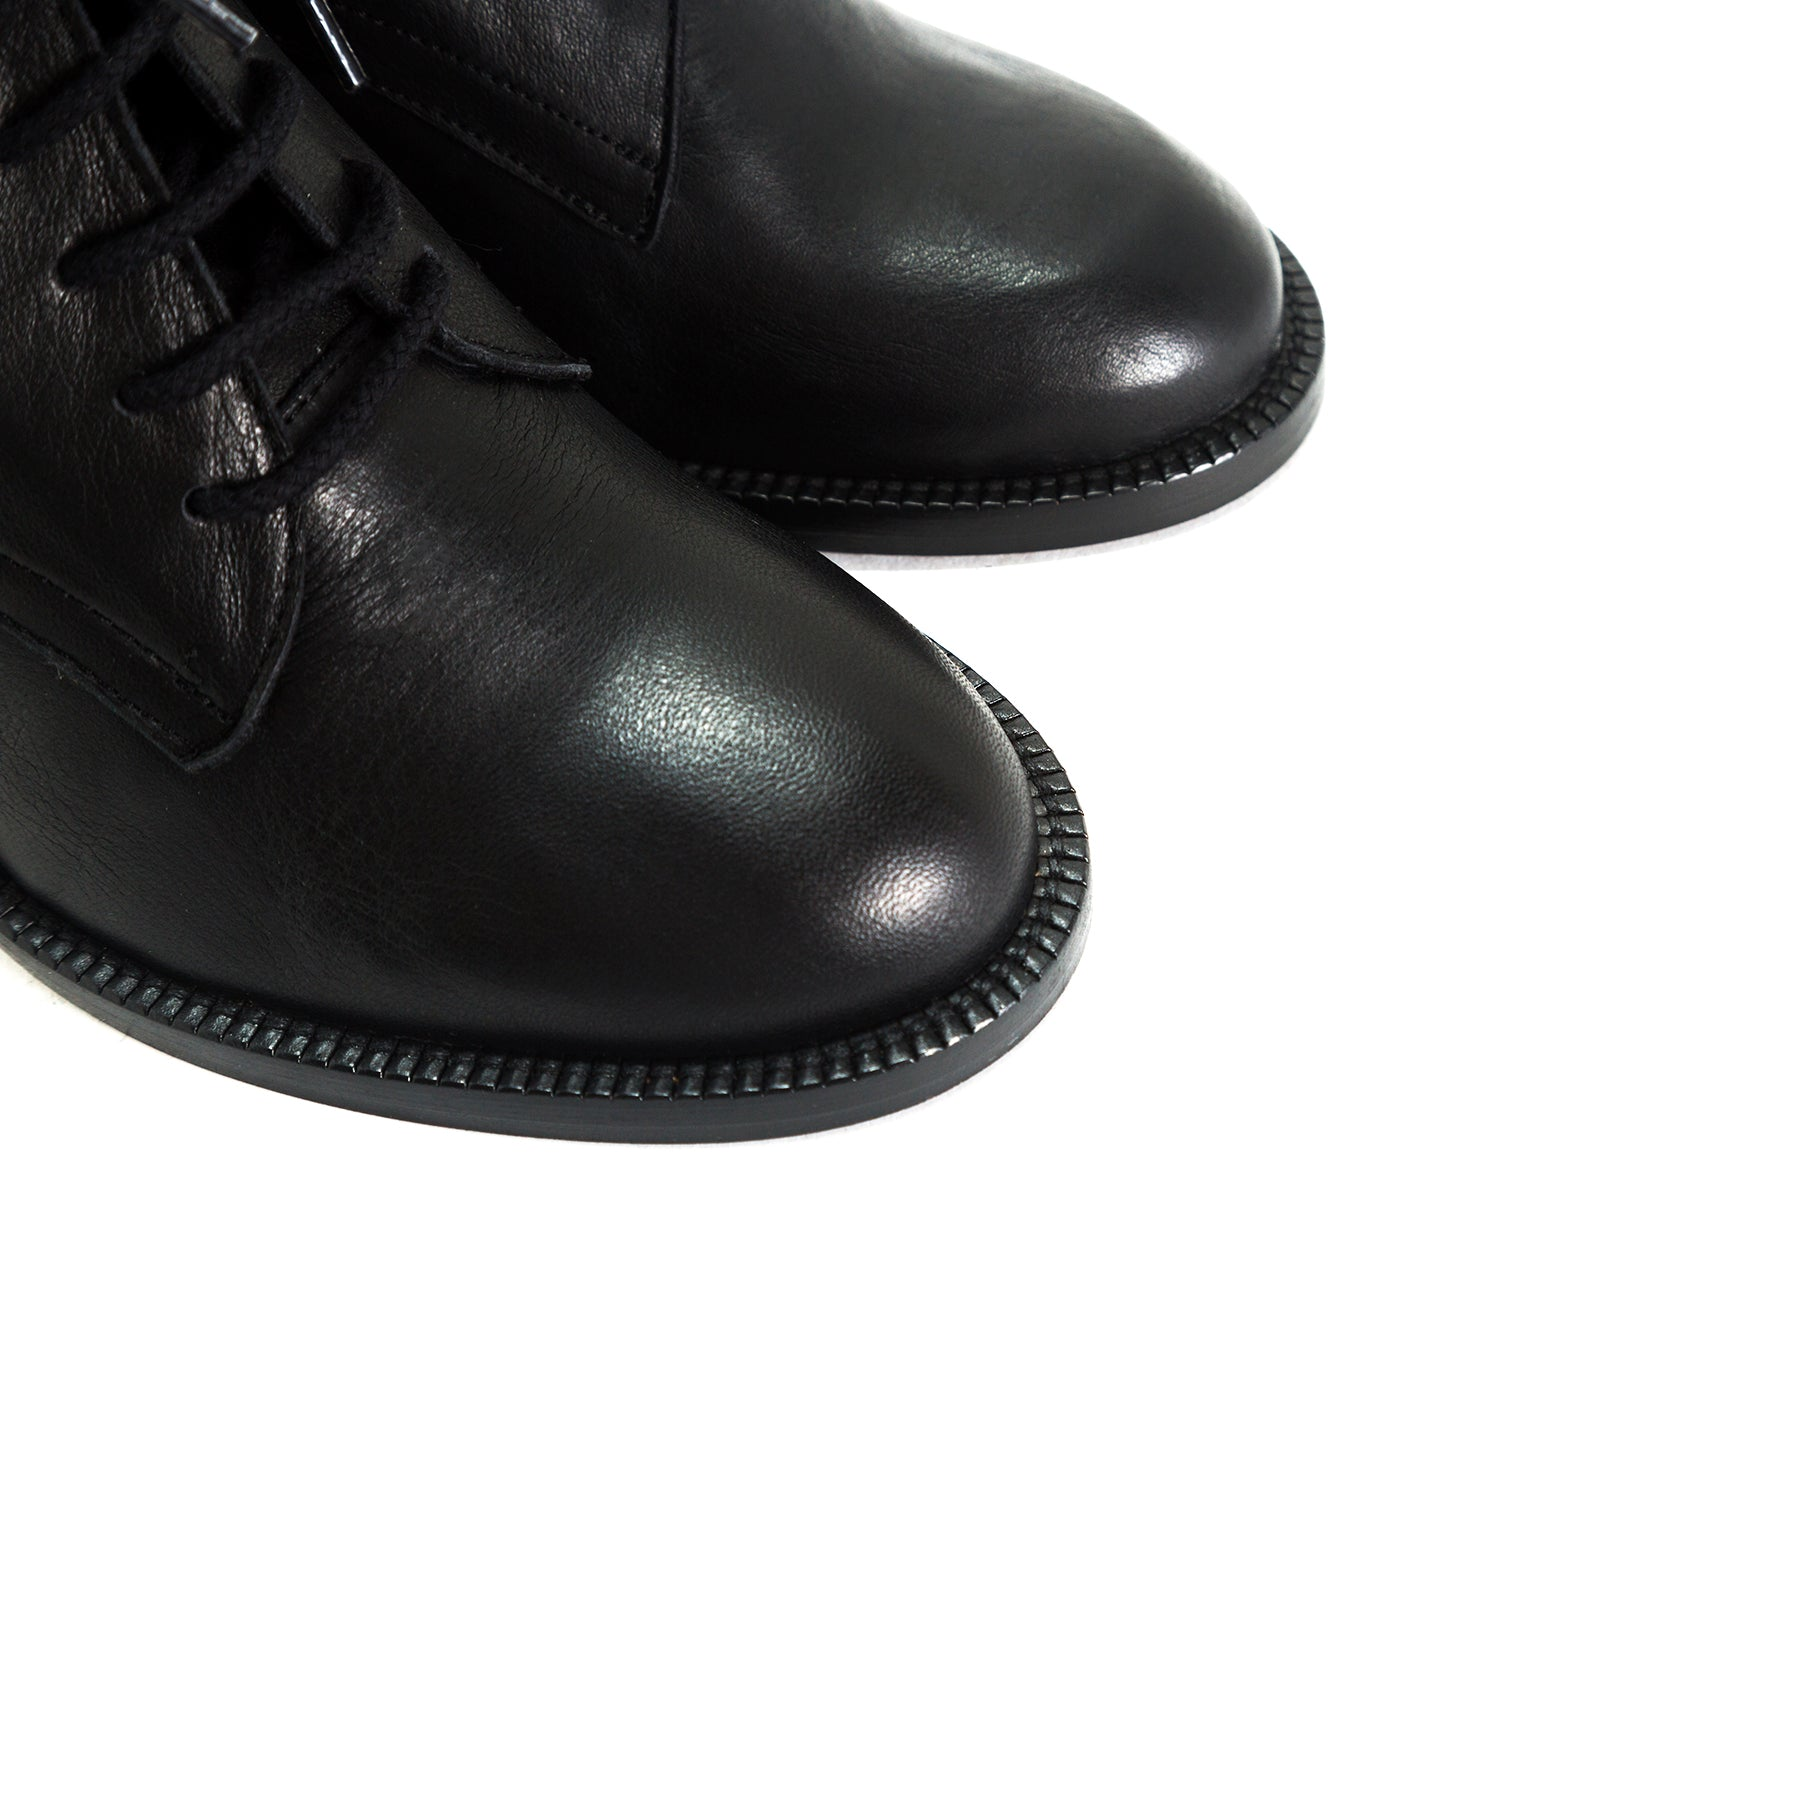 Pula Black Leather Booties